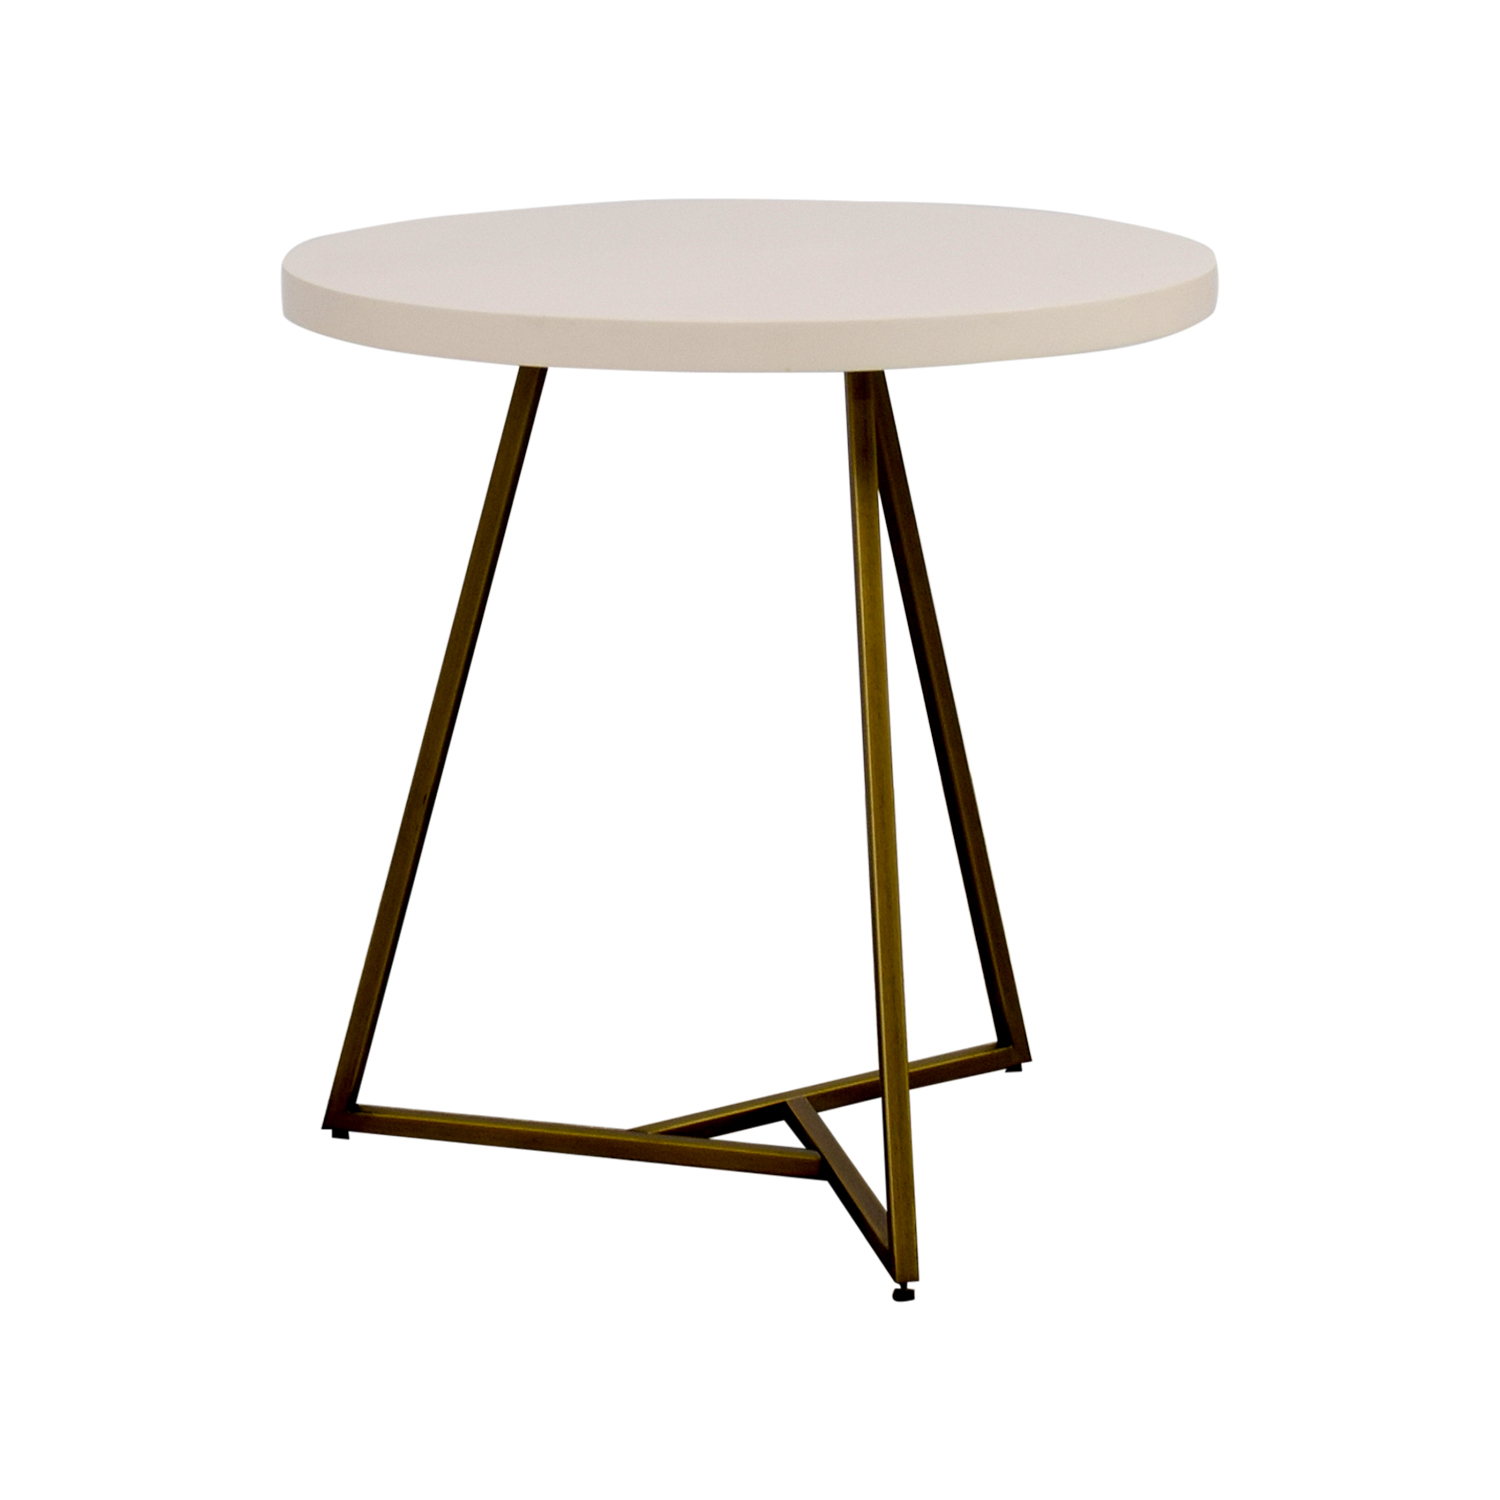 Cafe Tables 28 Off West Elm West Elm White Lacquer Top Cafe Table